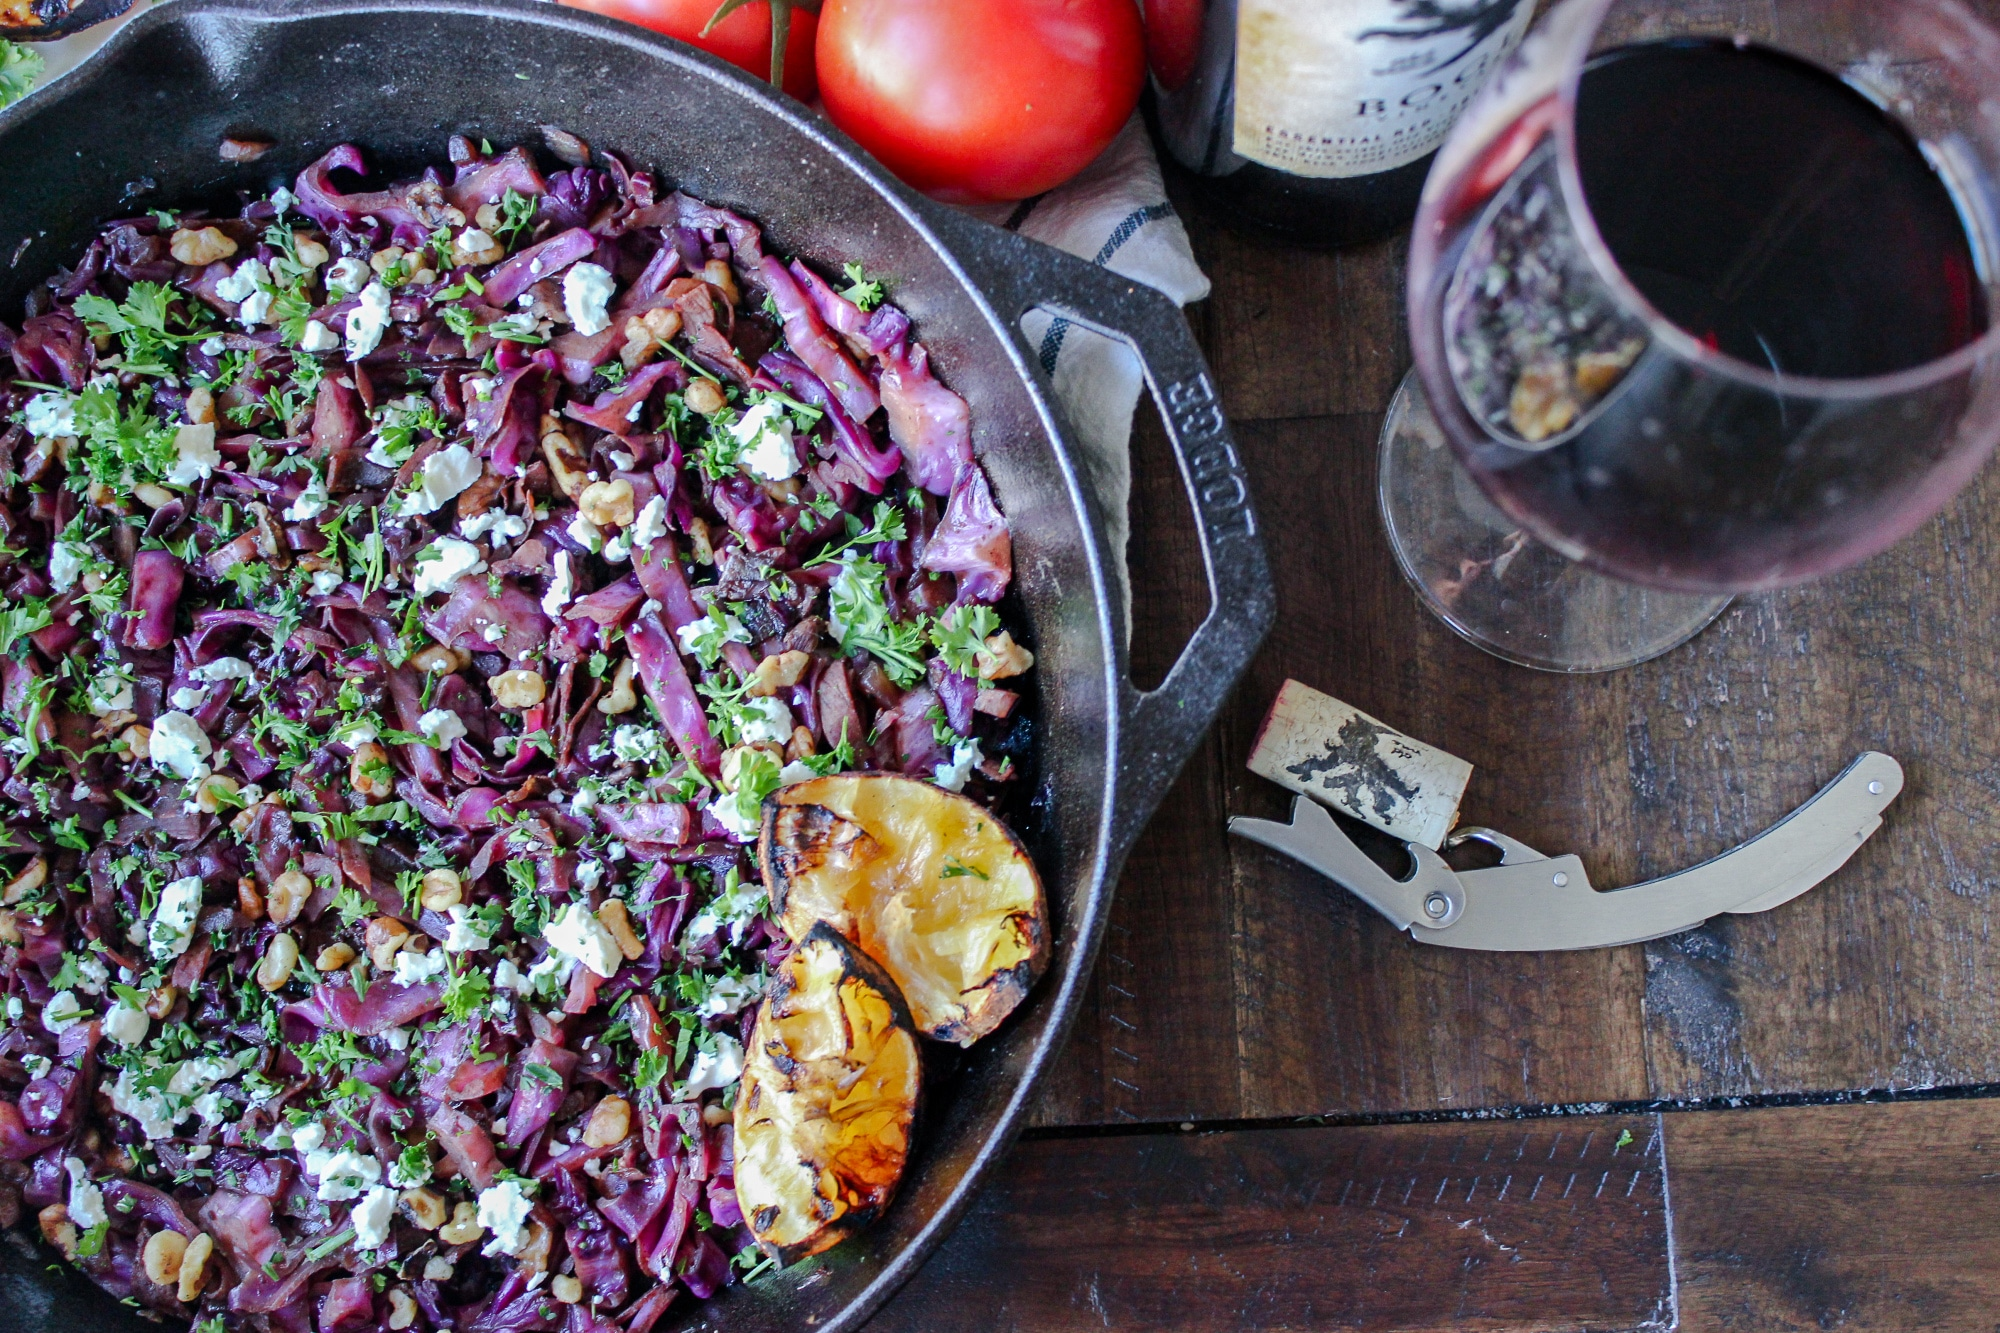 Braised Red Cabbage with Prosciutto and Goat Cheese